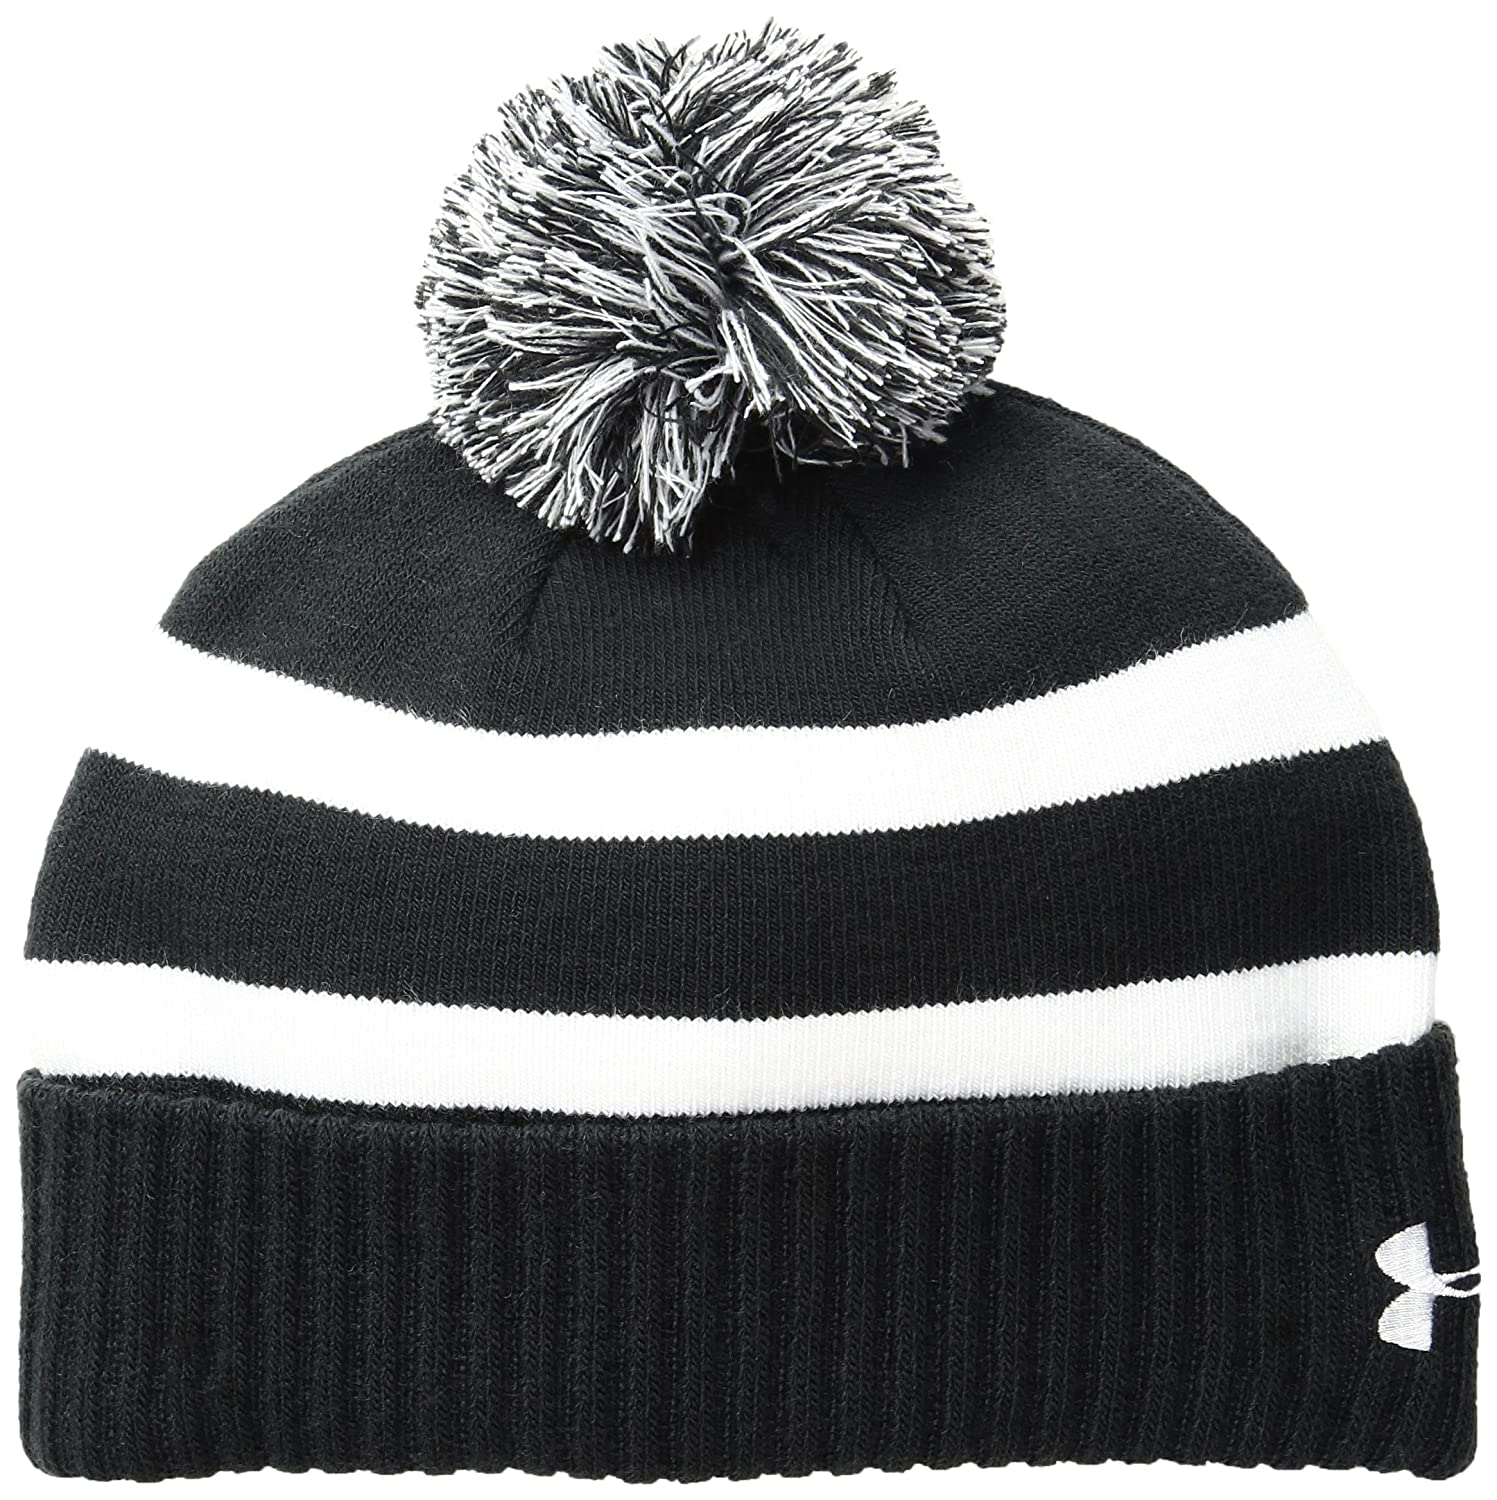 337dd6d4c54 Amazon.com  Under Armour Boys Pom Beanie